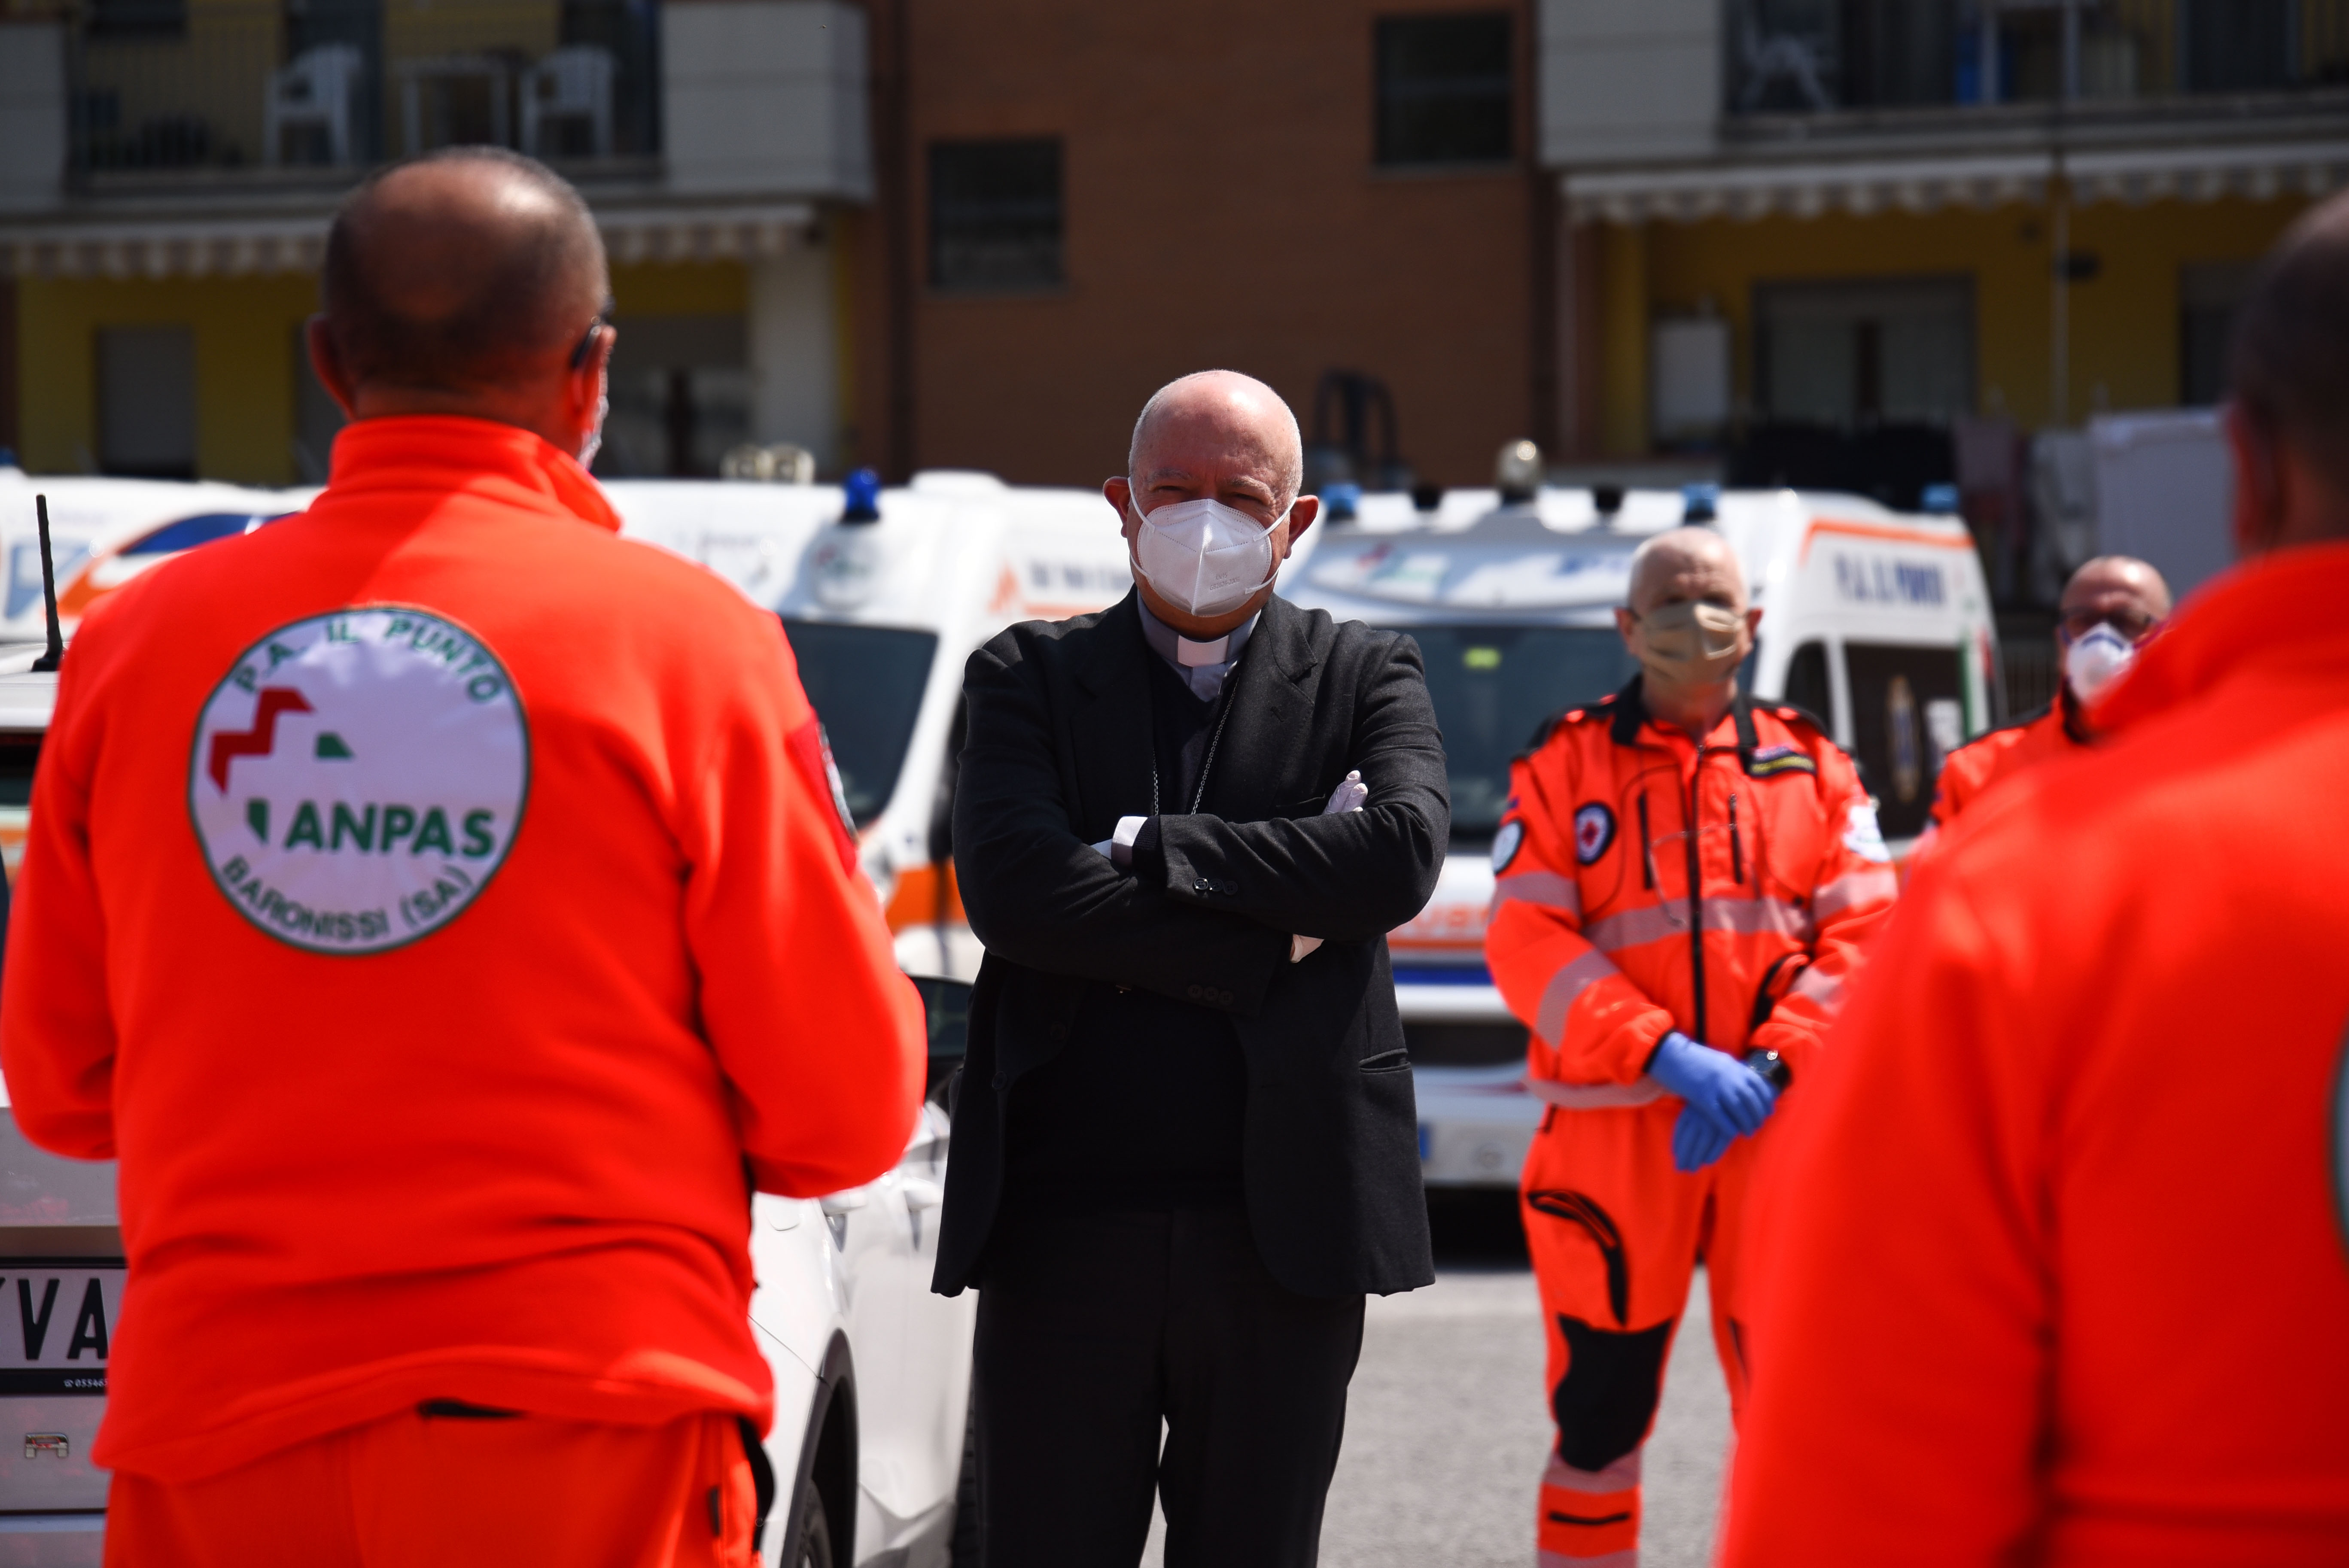 A priest stands next to emergency frontline health workers